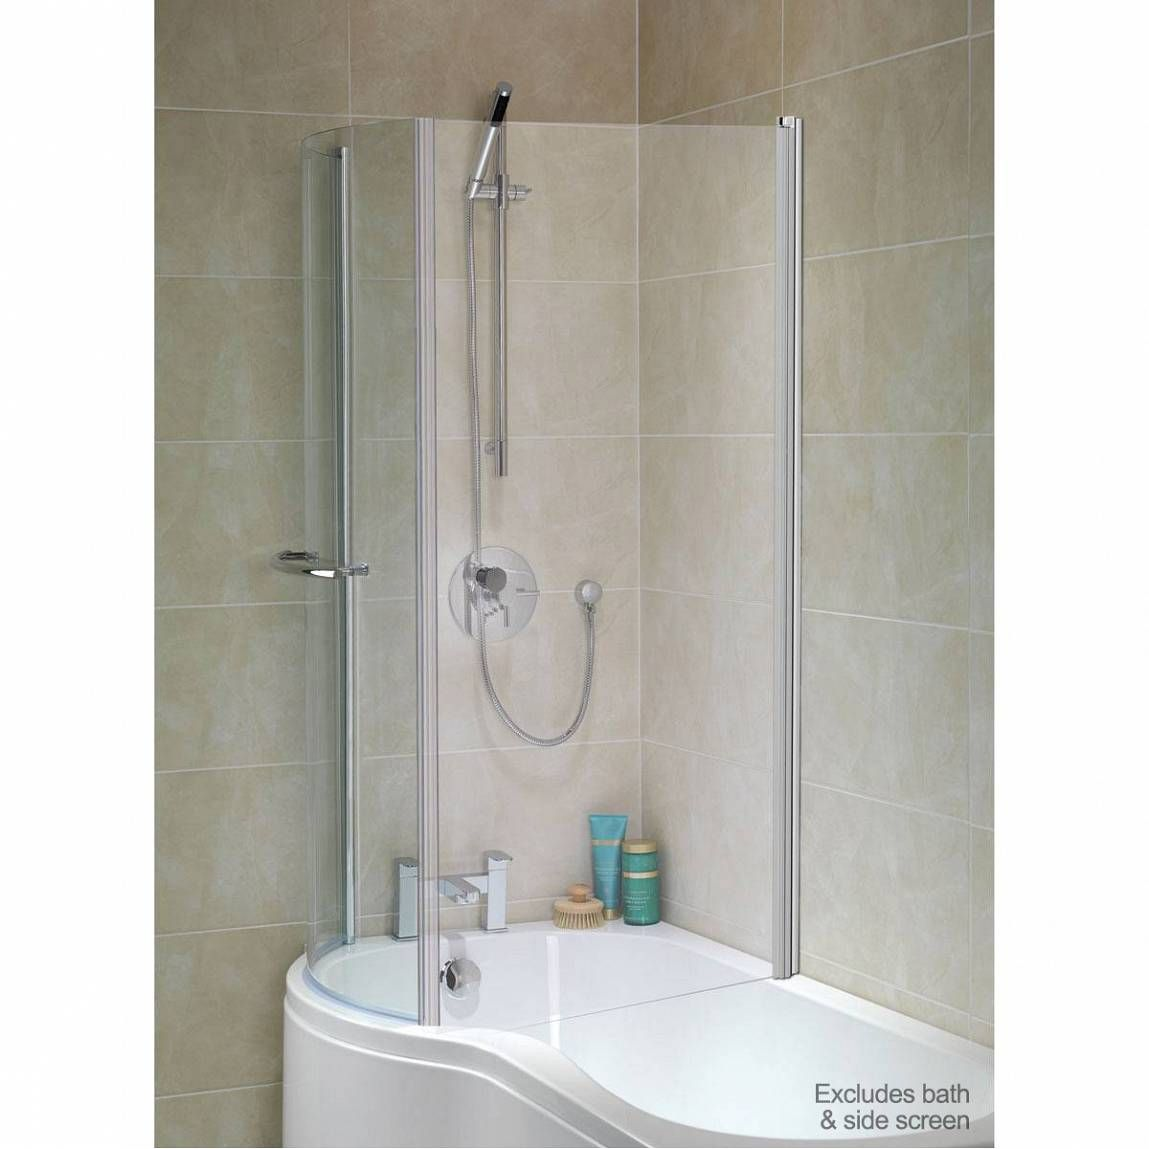 6mm Glass Door For P Shaped Shower Bath   Ideas for the House ...